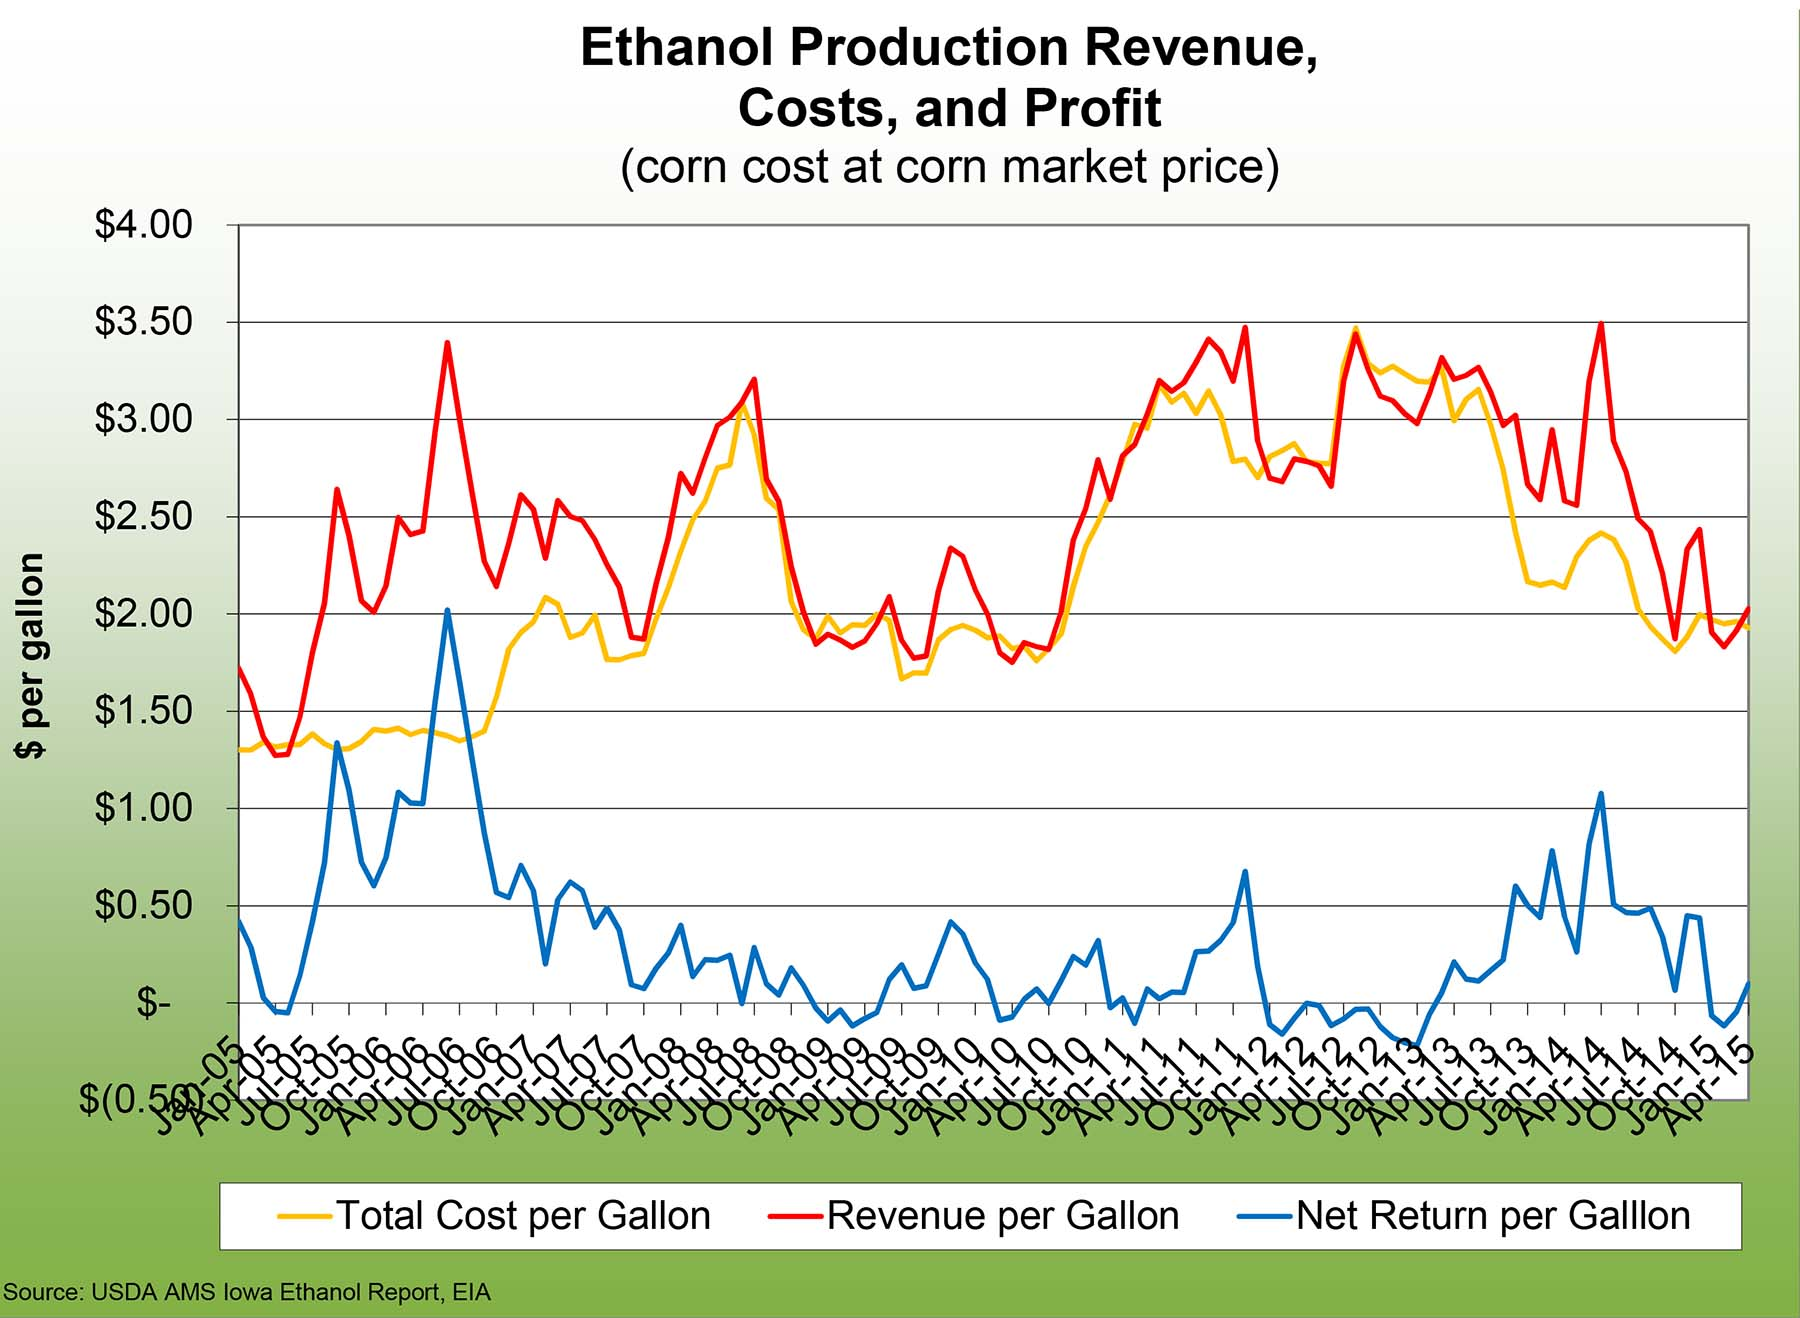 Ethanol production revenue, costs, and profit